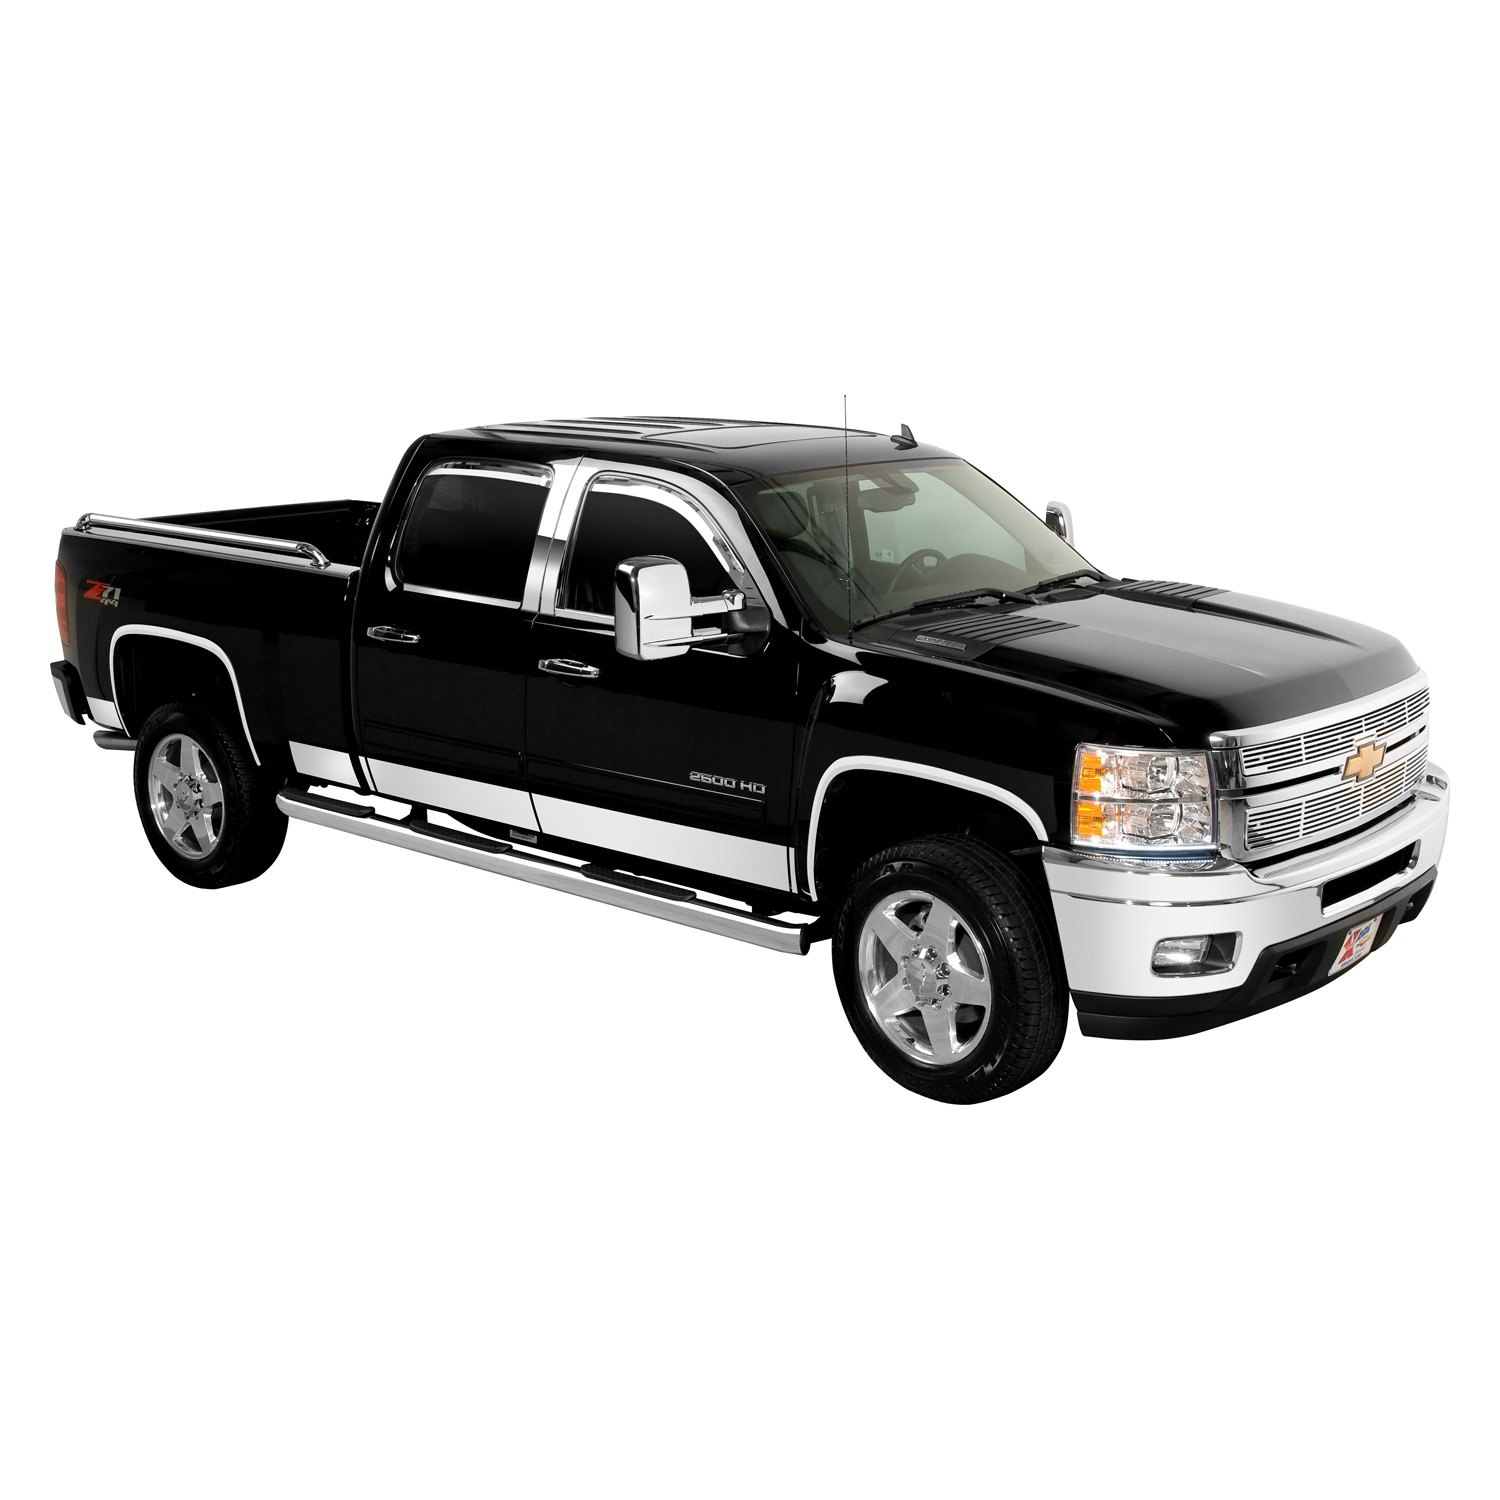 putco dodge ram 1500 2002 polished rocker panel covers. Cars Review. Best American Auto & Cars Review